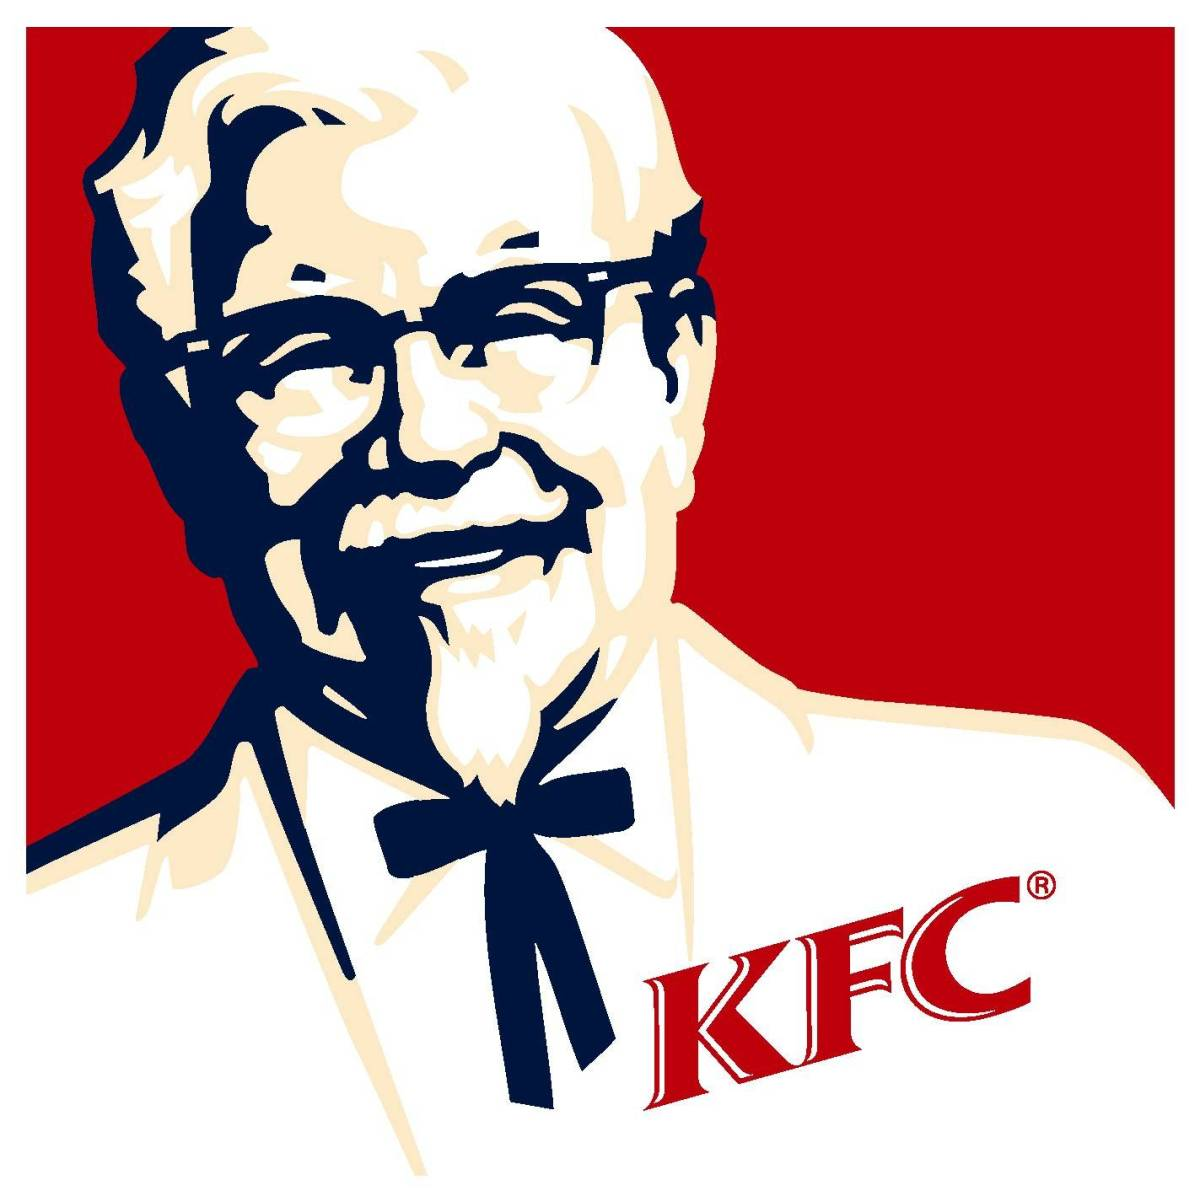 Colonel Sanders - The symbol of KFC